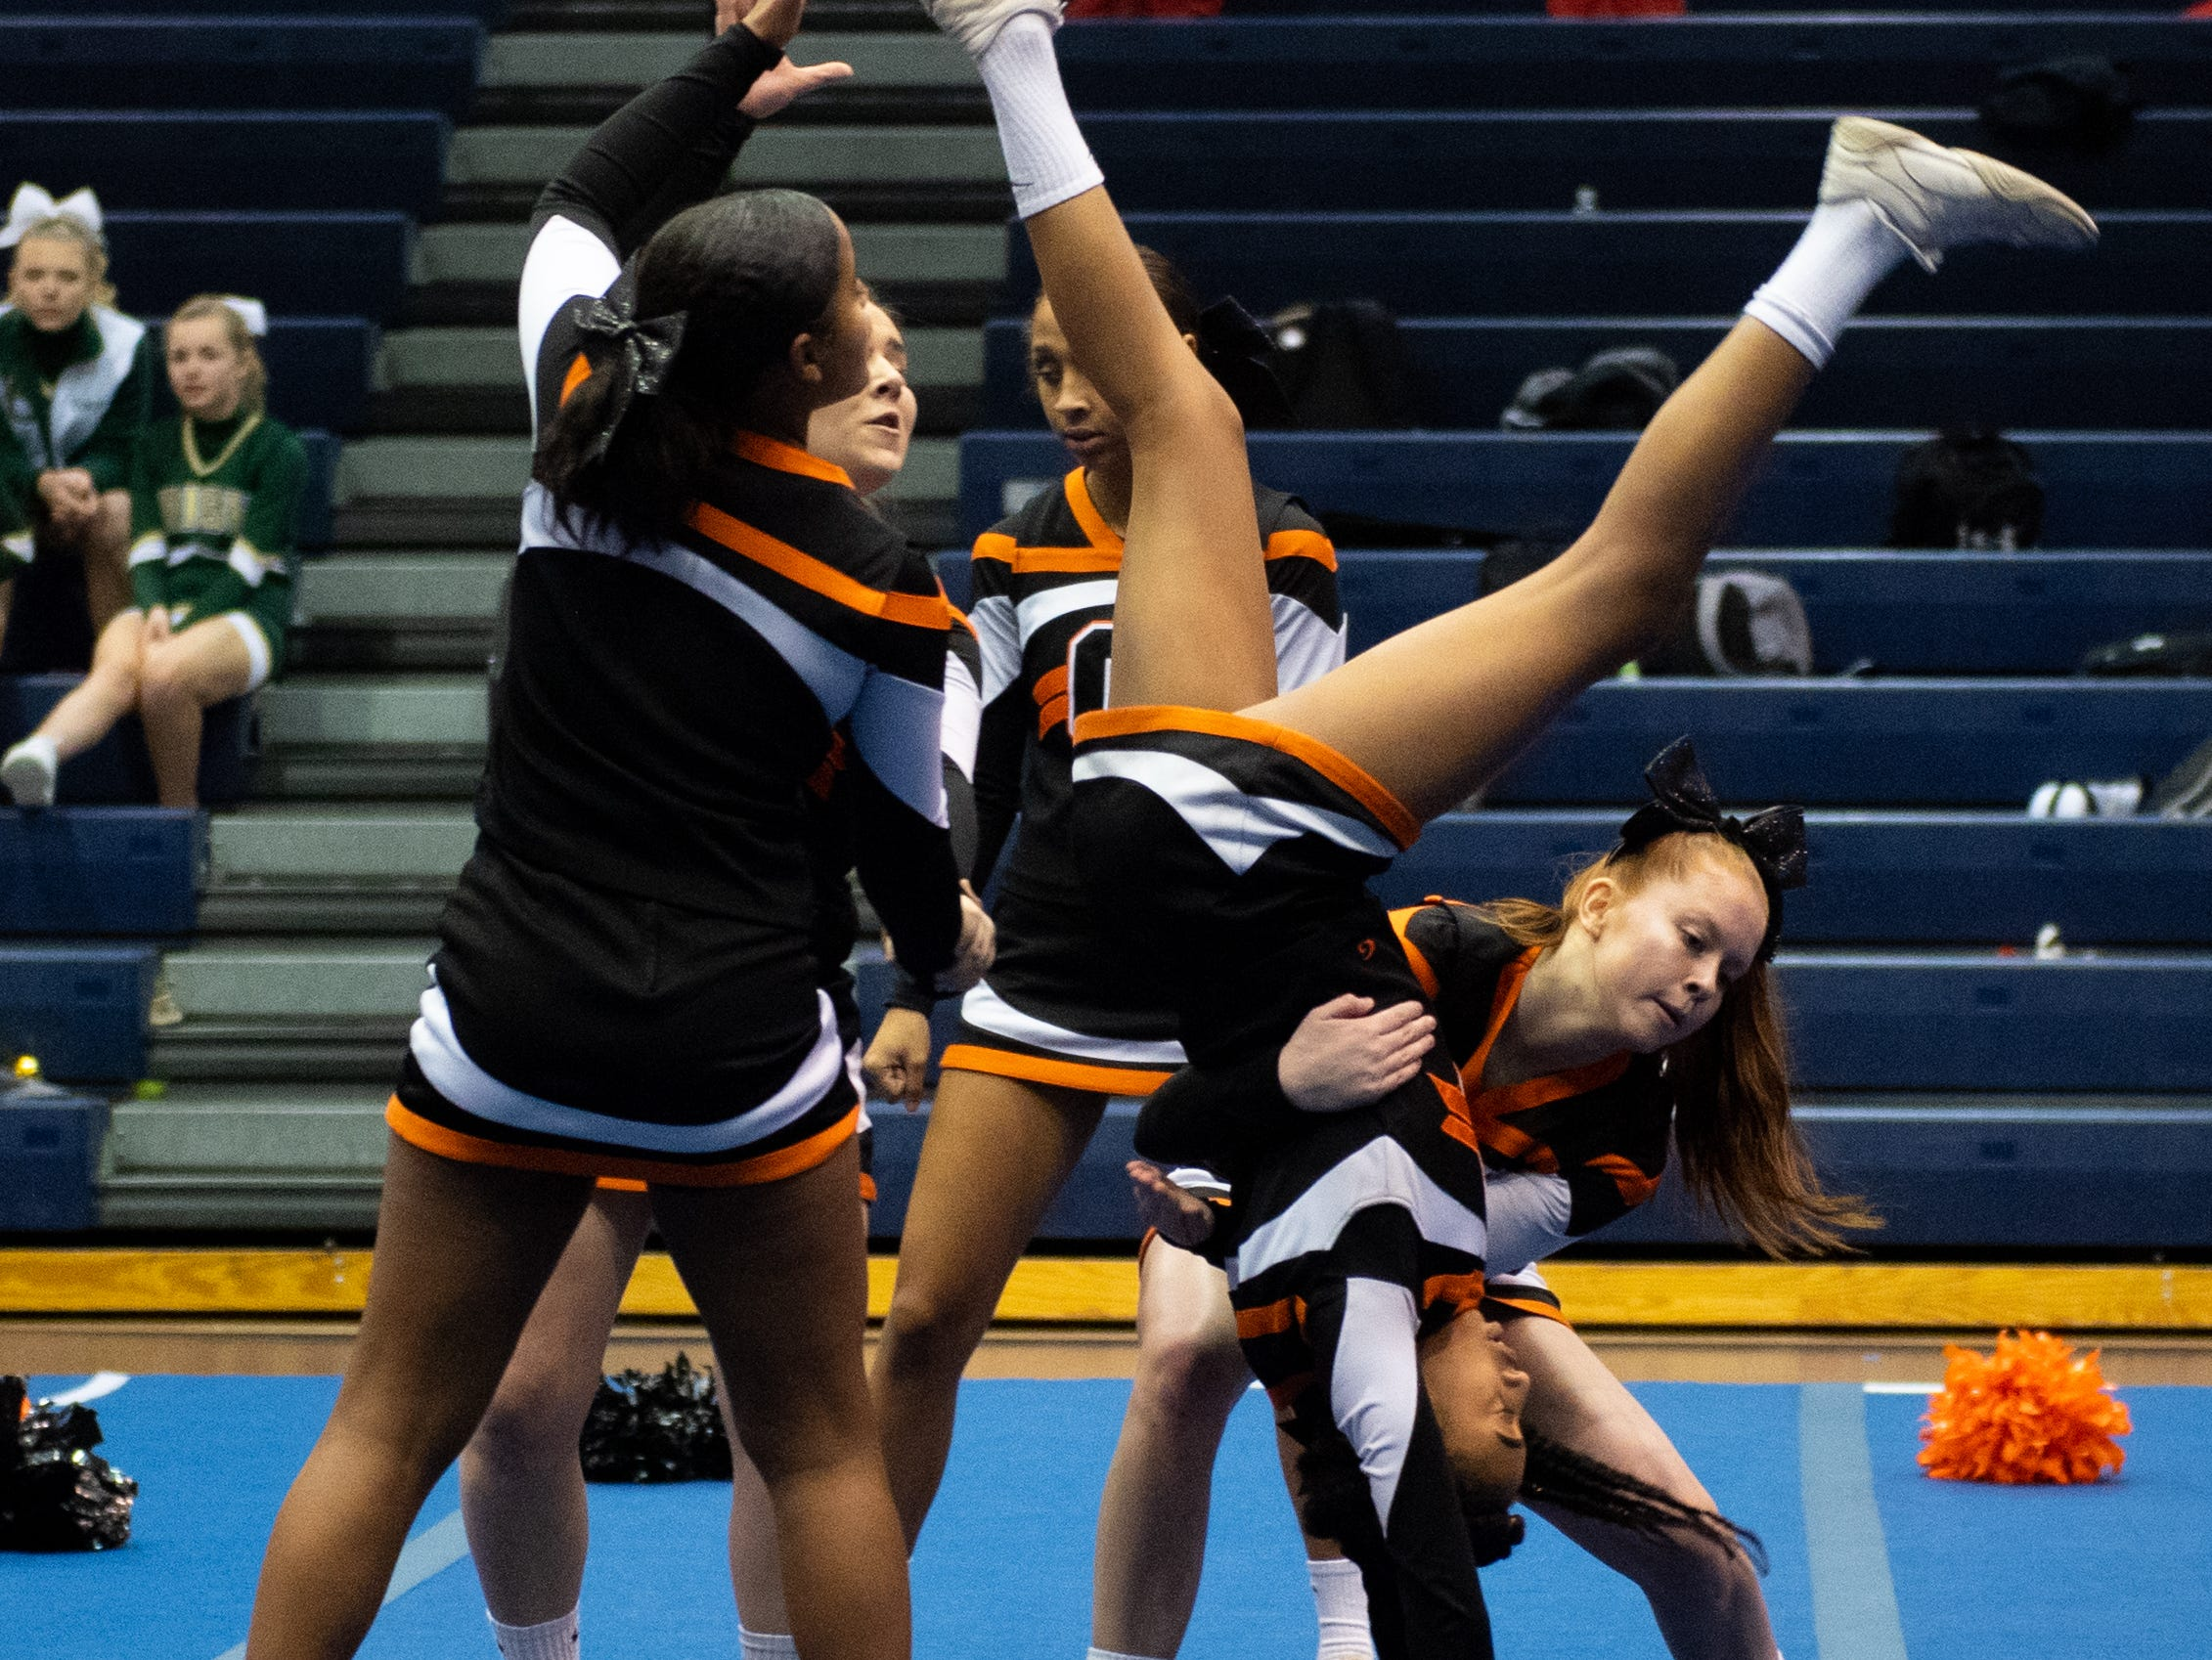 Central York performs their routine during the YAIAA competitive spirit championships at Dallastown High School, Saturday, December 1, 2018. Dover won the small-varsity division and Red Lion won the coed division.